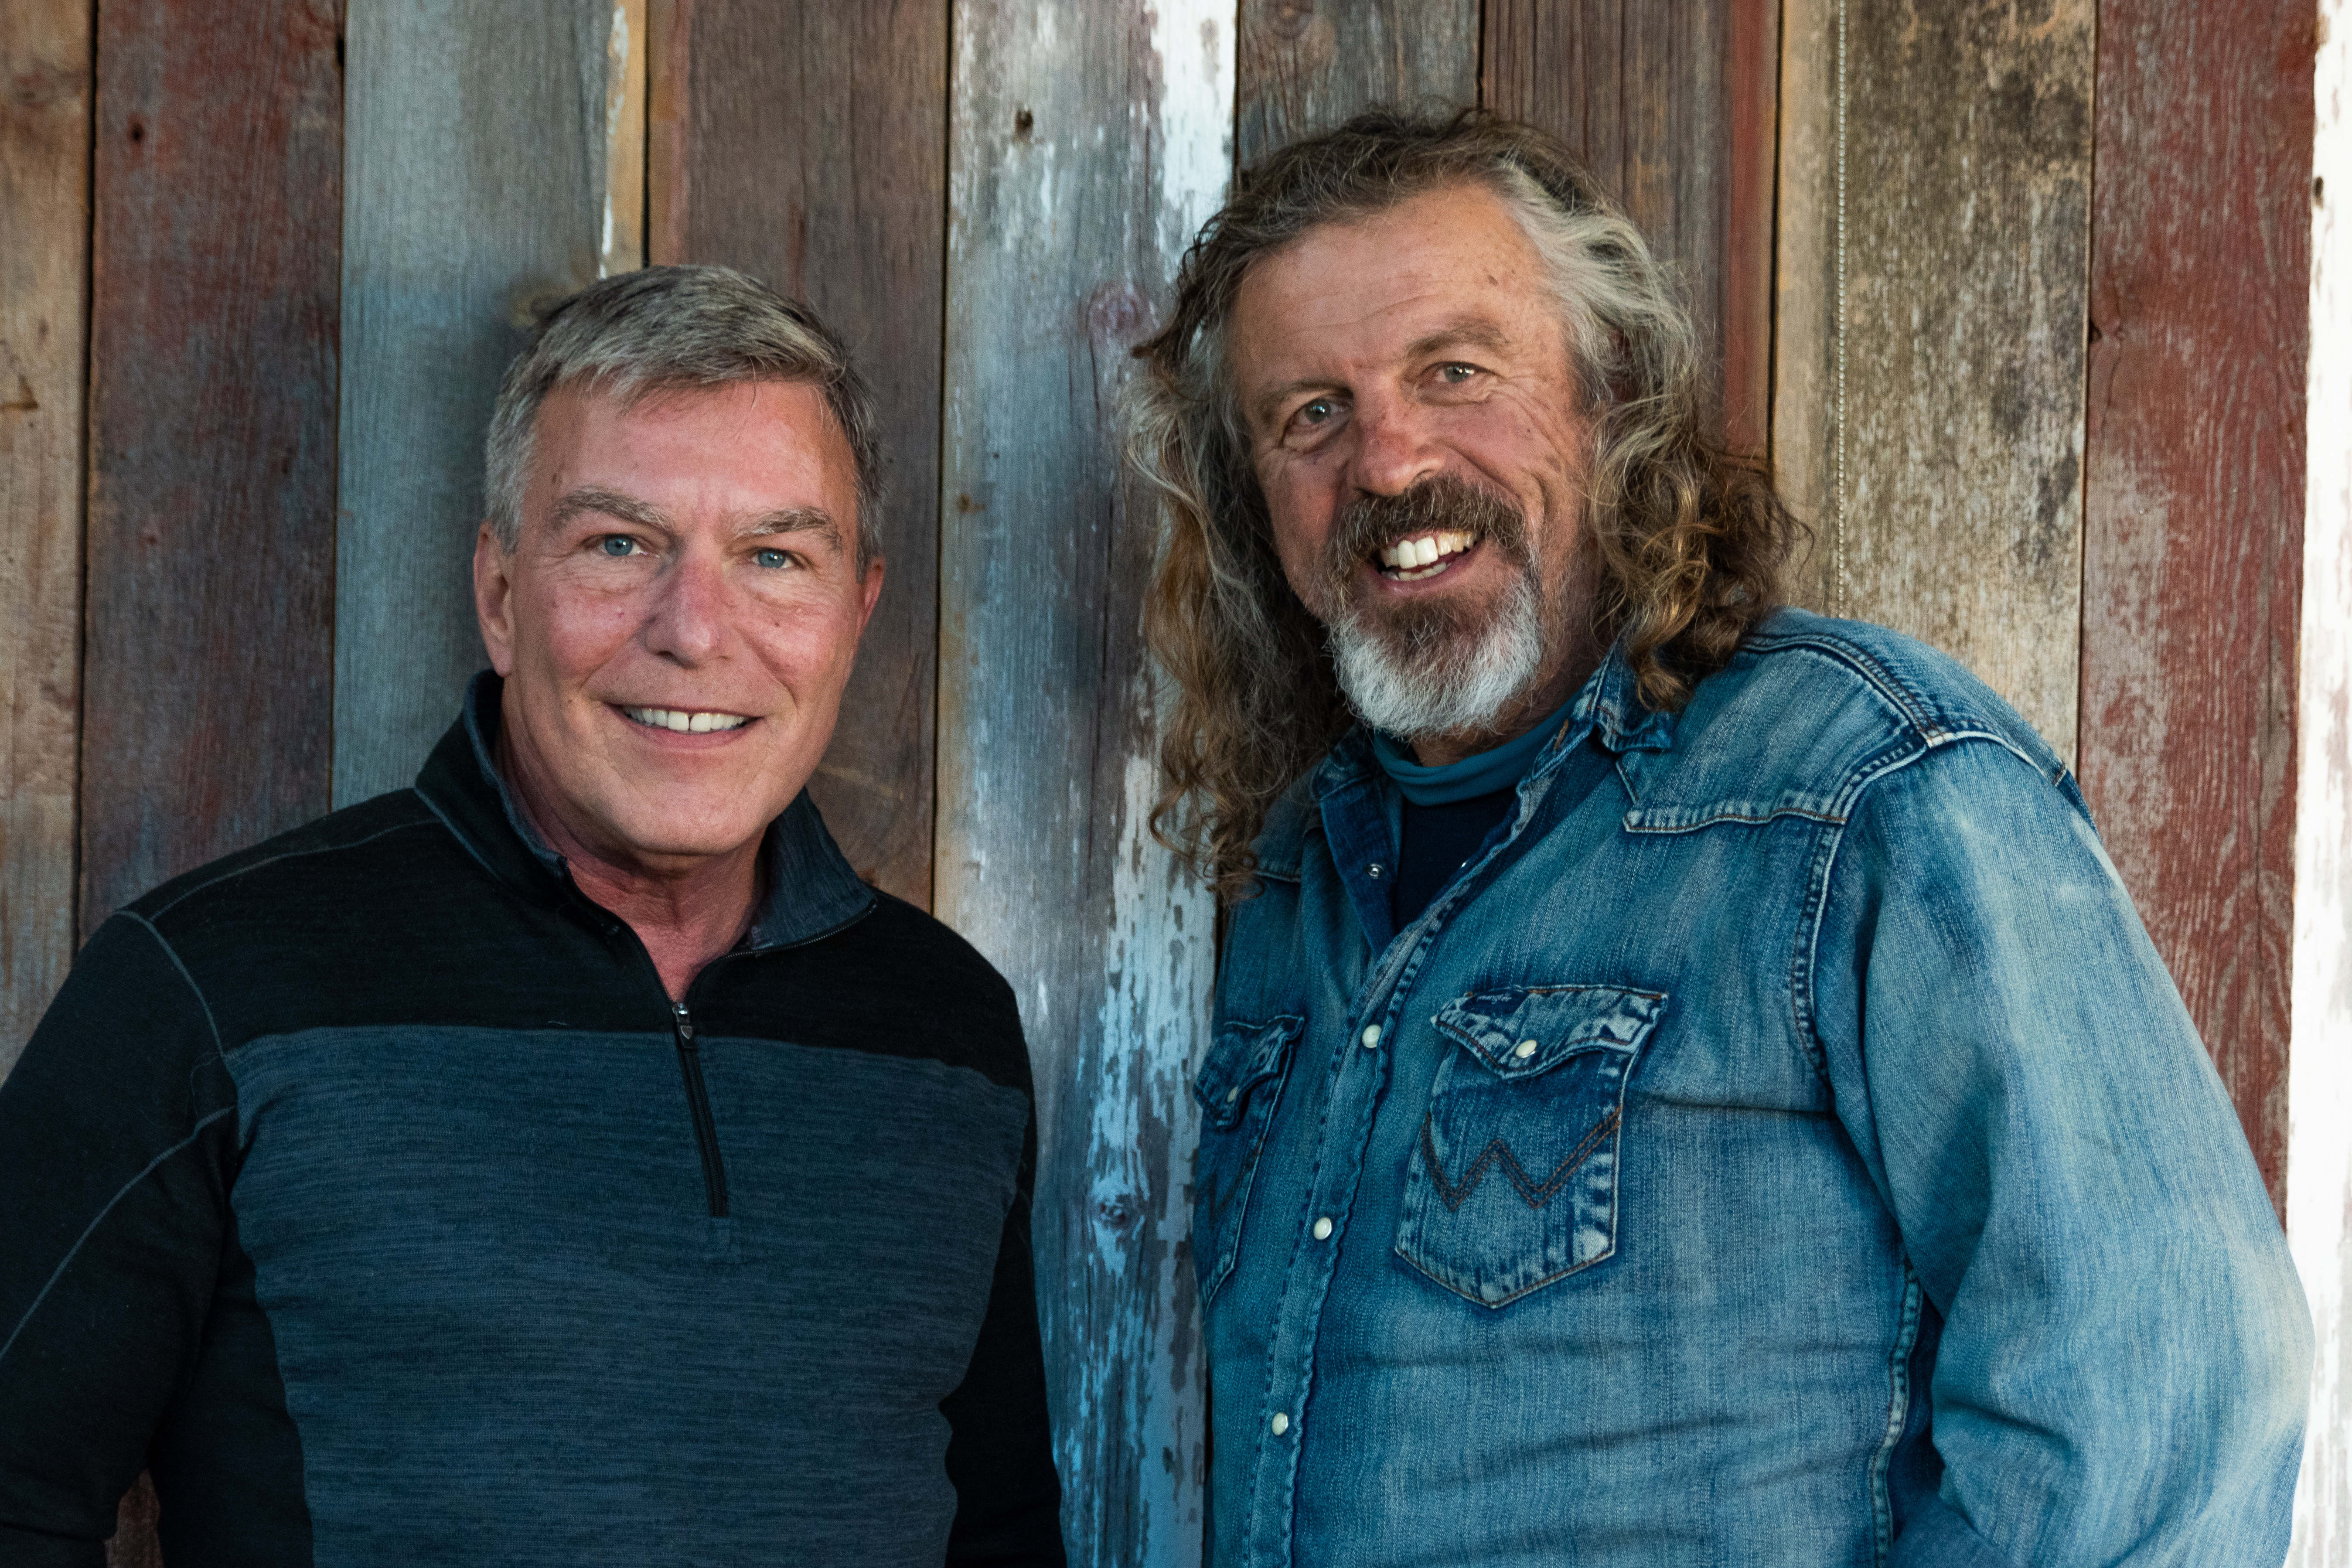 Tom Kamm wearing a dark blue button-down shirt standing next to Jack Gilmore wearing a denim button-down shirt in front of a wooden wall